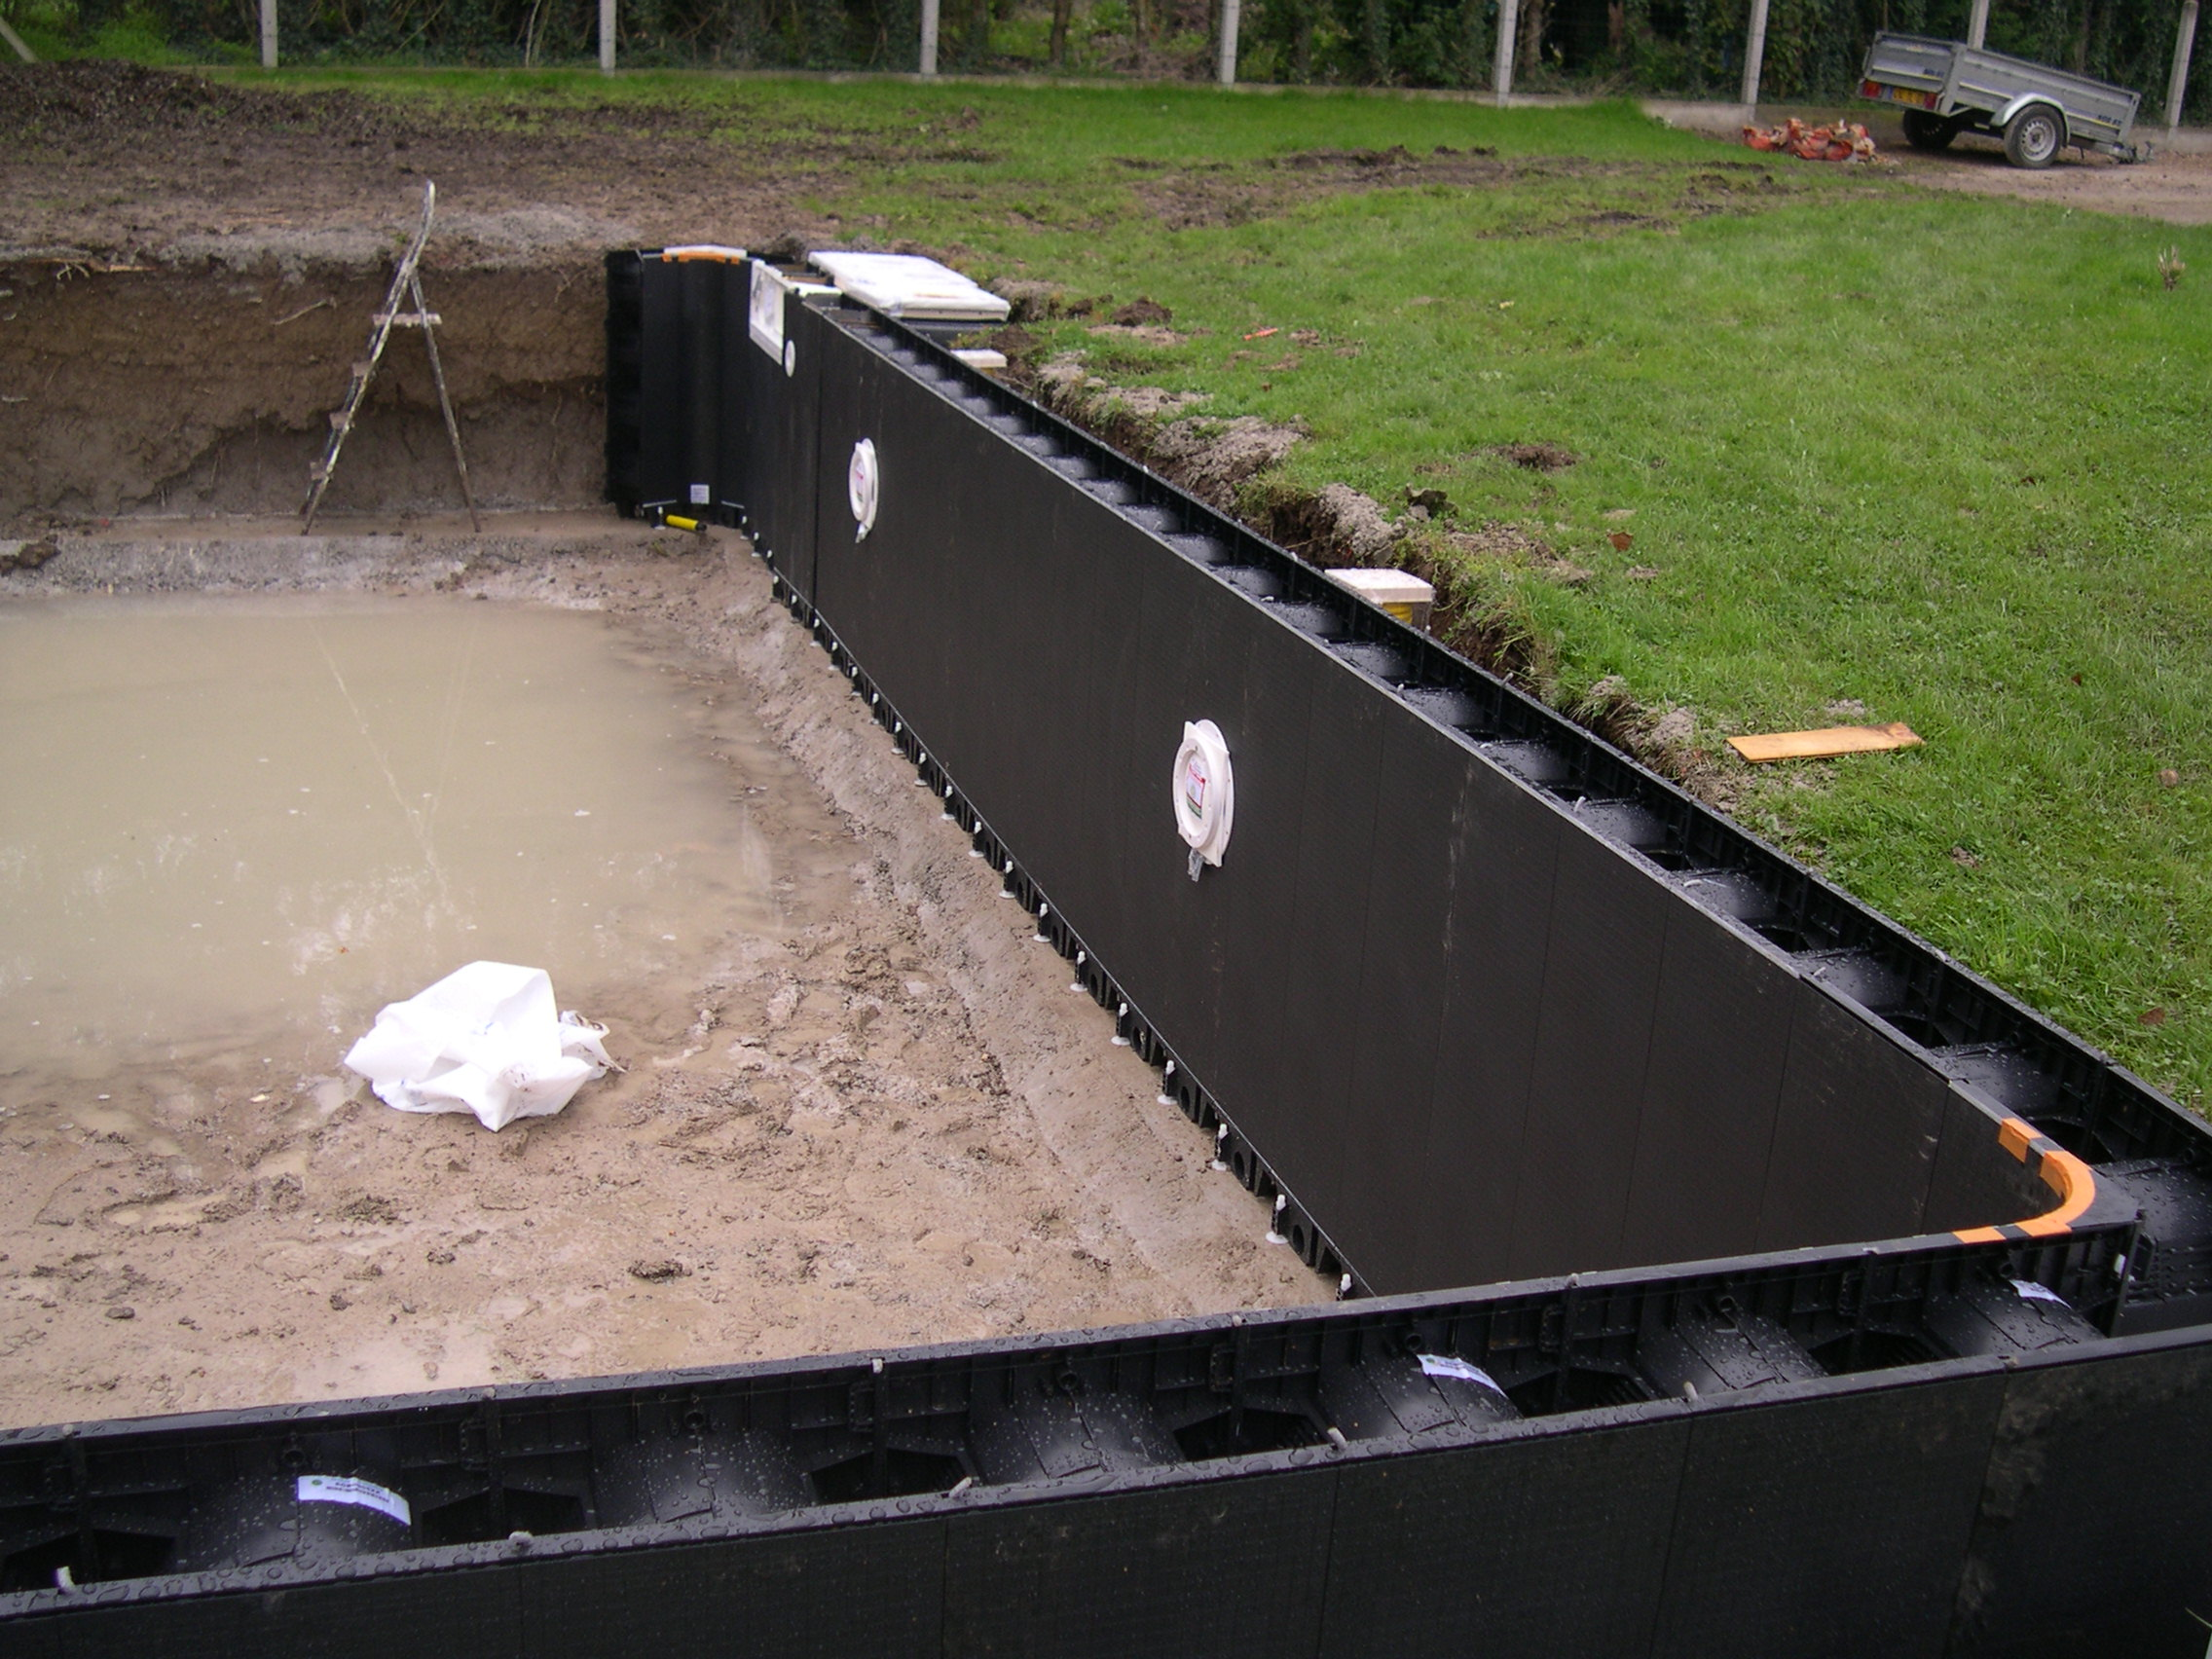 Structure piscine construction piscine magiline 9x for Construction de piscines